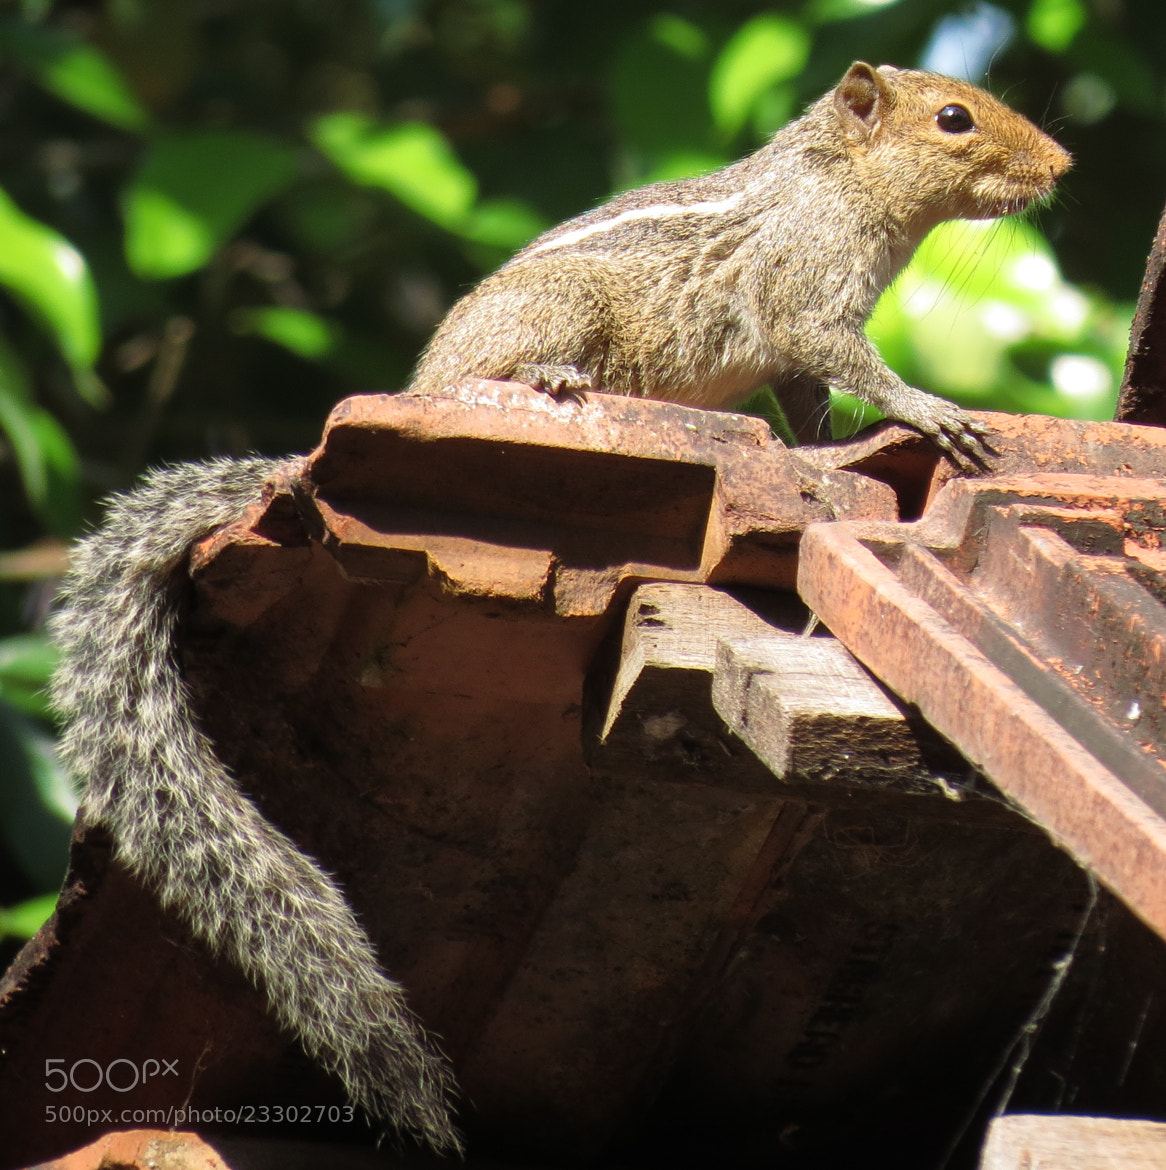 Photograph Indian palm squirrel by Sinu Nair on 500px